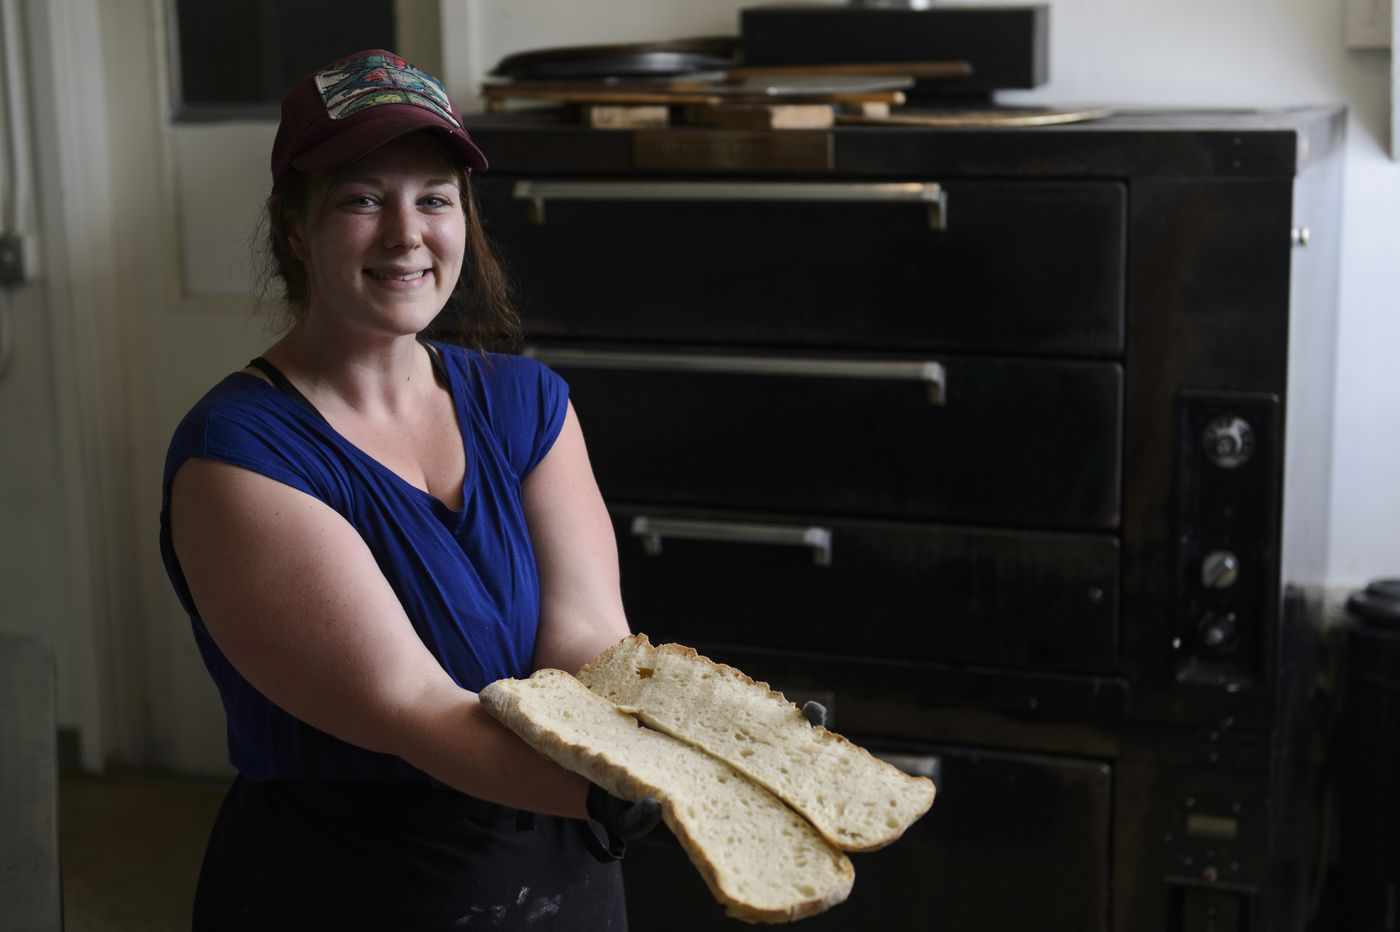 Katie Wright operates Concoction Breads and Provisions from the Anchorage re:MADE building in South Anchorage. (Marc Lester / ADN)